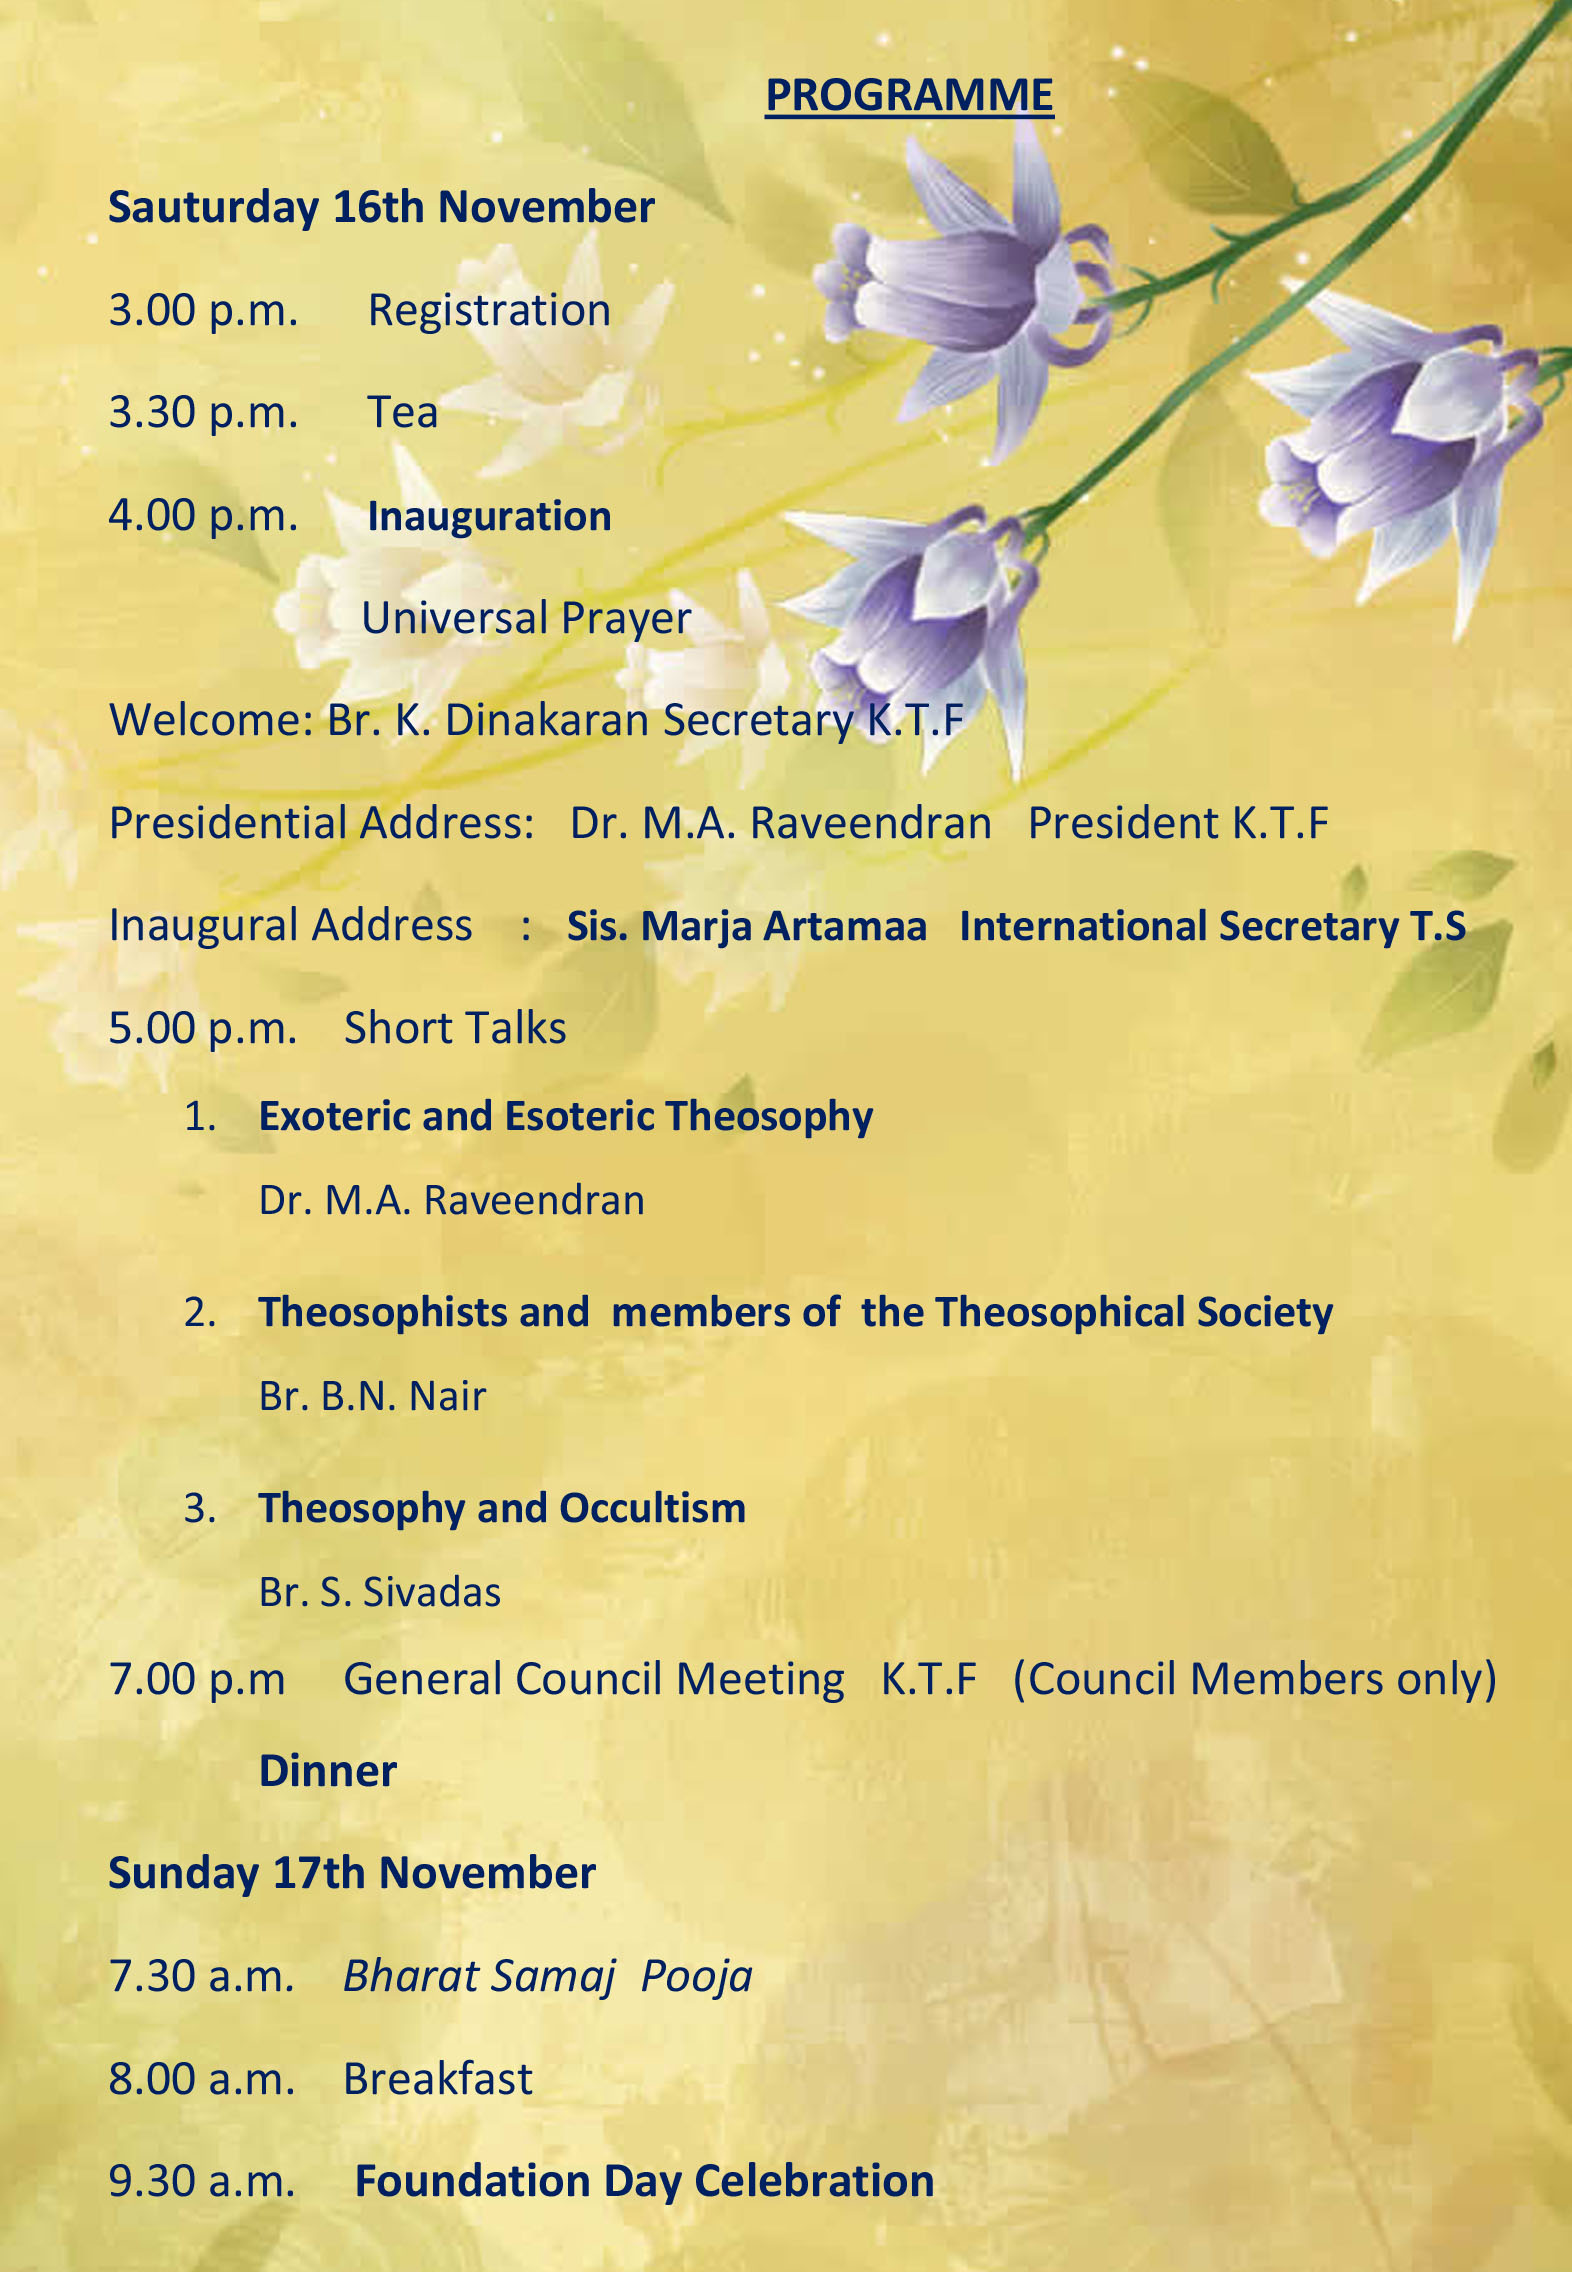 THE KERALA THEOSOPHICAL FEDERATION 90TH ANNUAL CONFERENCE     AT TRIPRAYAR,   TRICHUR ON NOVEMBER 16TH SATURDAY AND 17TH SUNDAY 2019 CHIEF GUEST:  Sis. MARJA ARTAMAA  International Secretary, Theosophical Society Adya